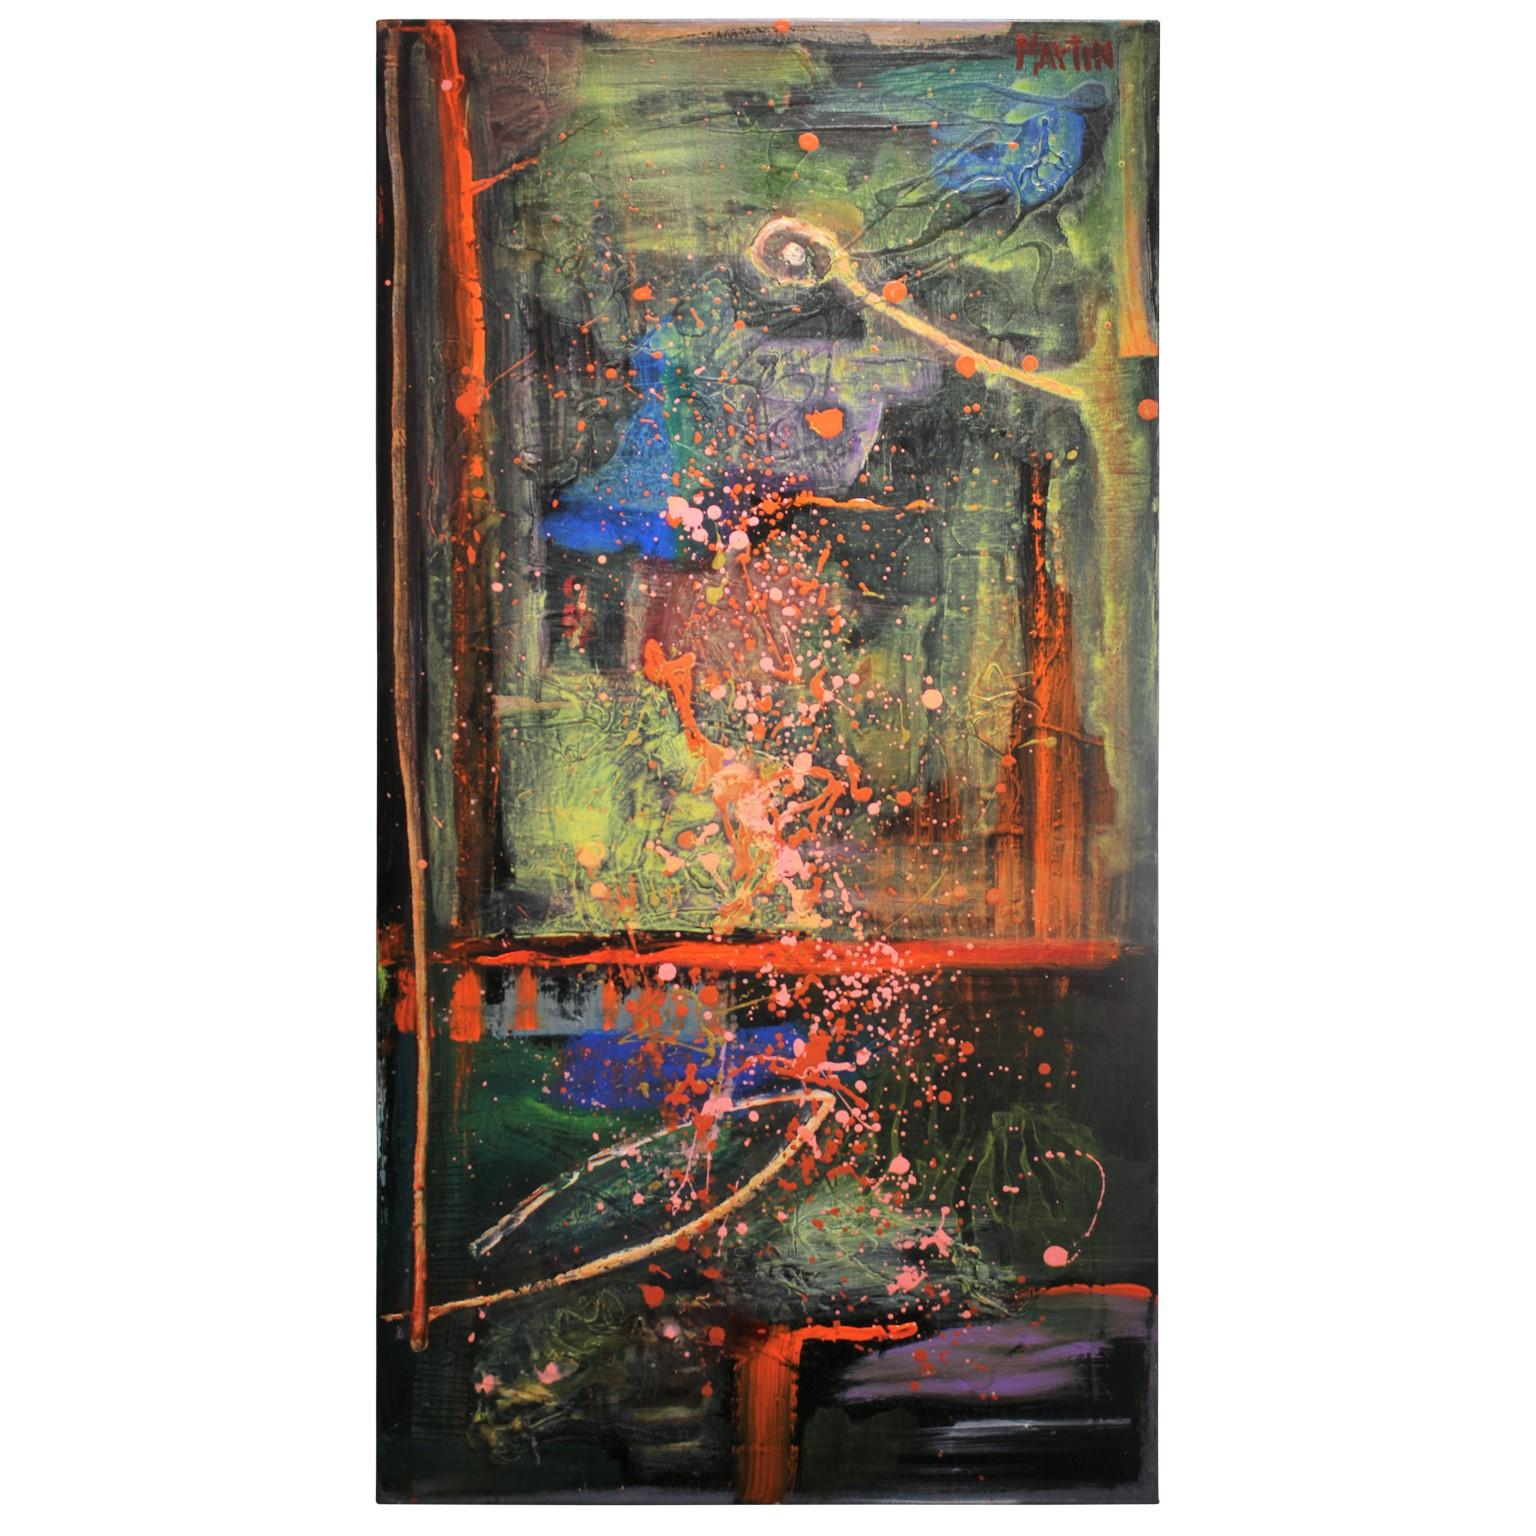 Deep Tonal Abstract Expressionist Painting with Pink Splatter